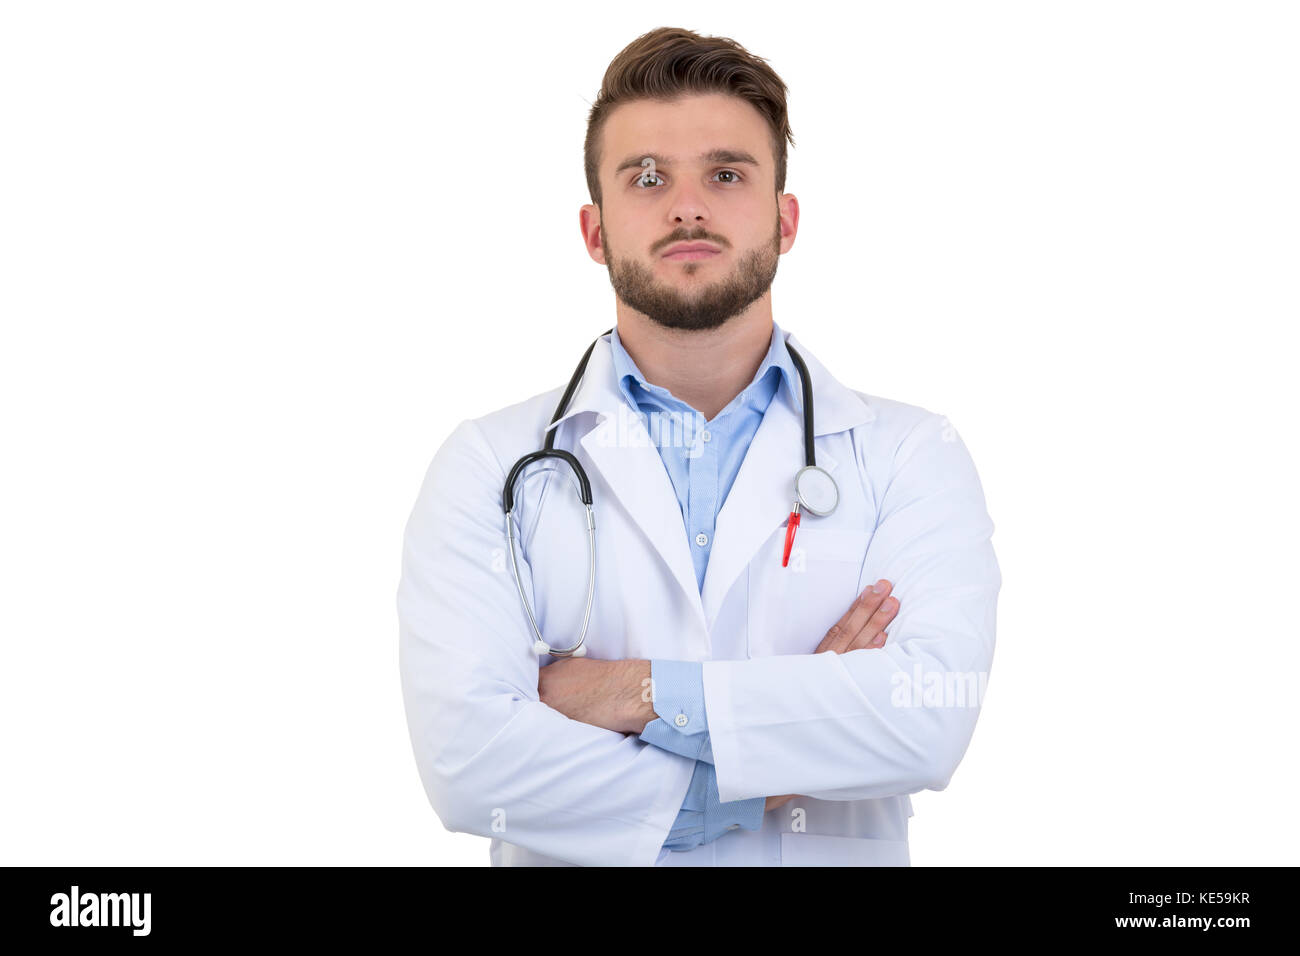 Portrait of confident young medical doctor on white background - Stock Image